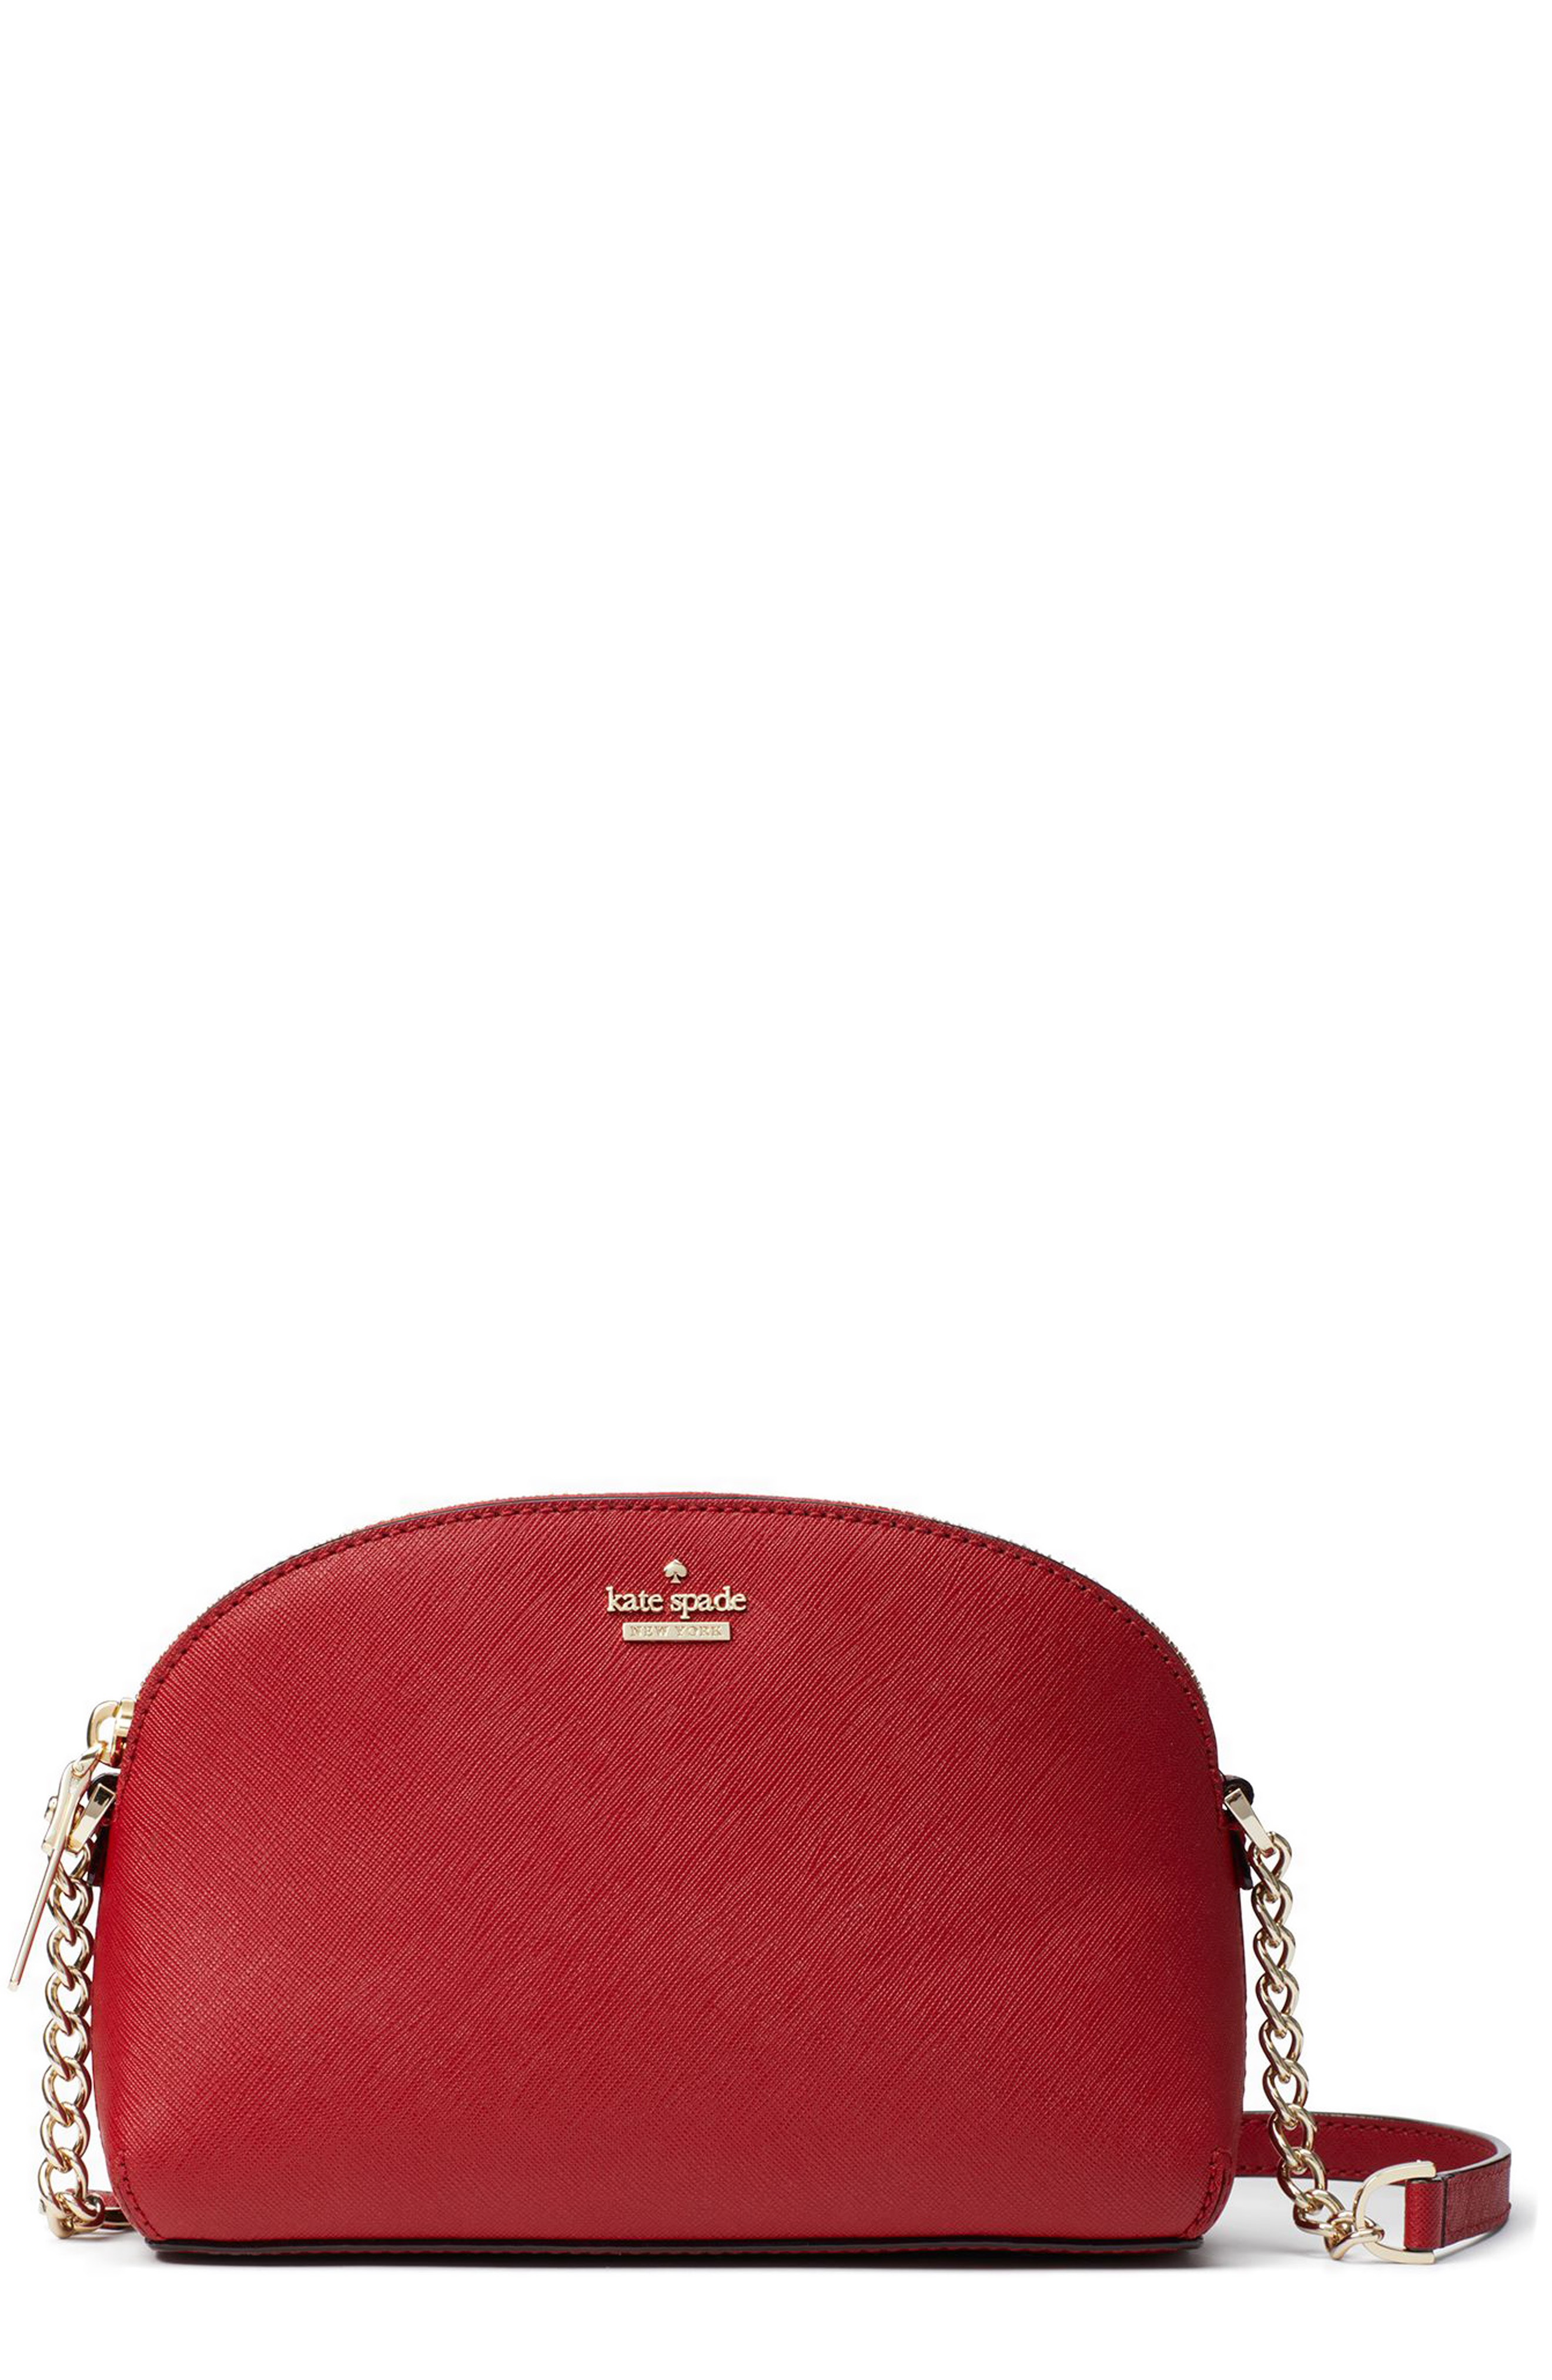 ad066b65939d6a Kate Spade Cameron Street - Hilli Leather Crossbody Bag - Red In Sienna